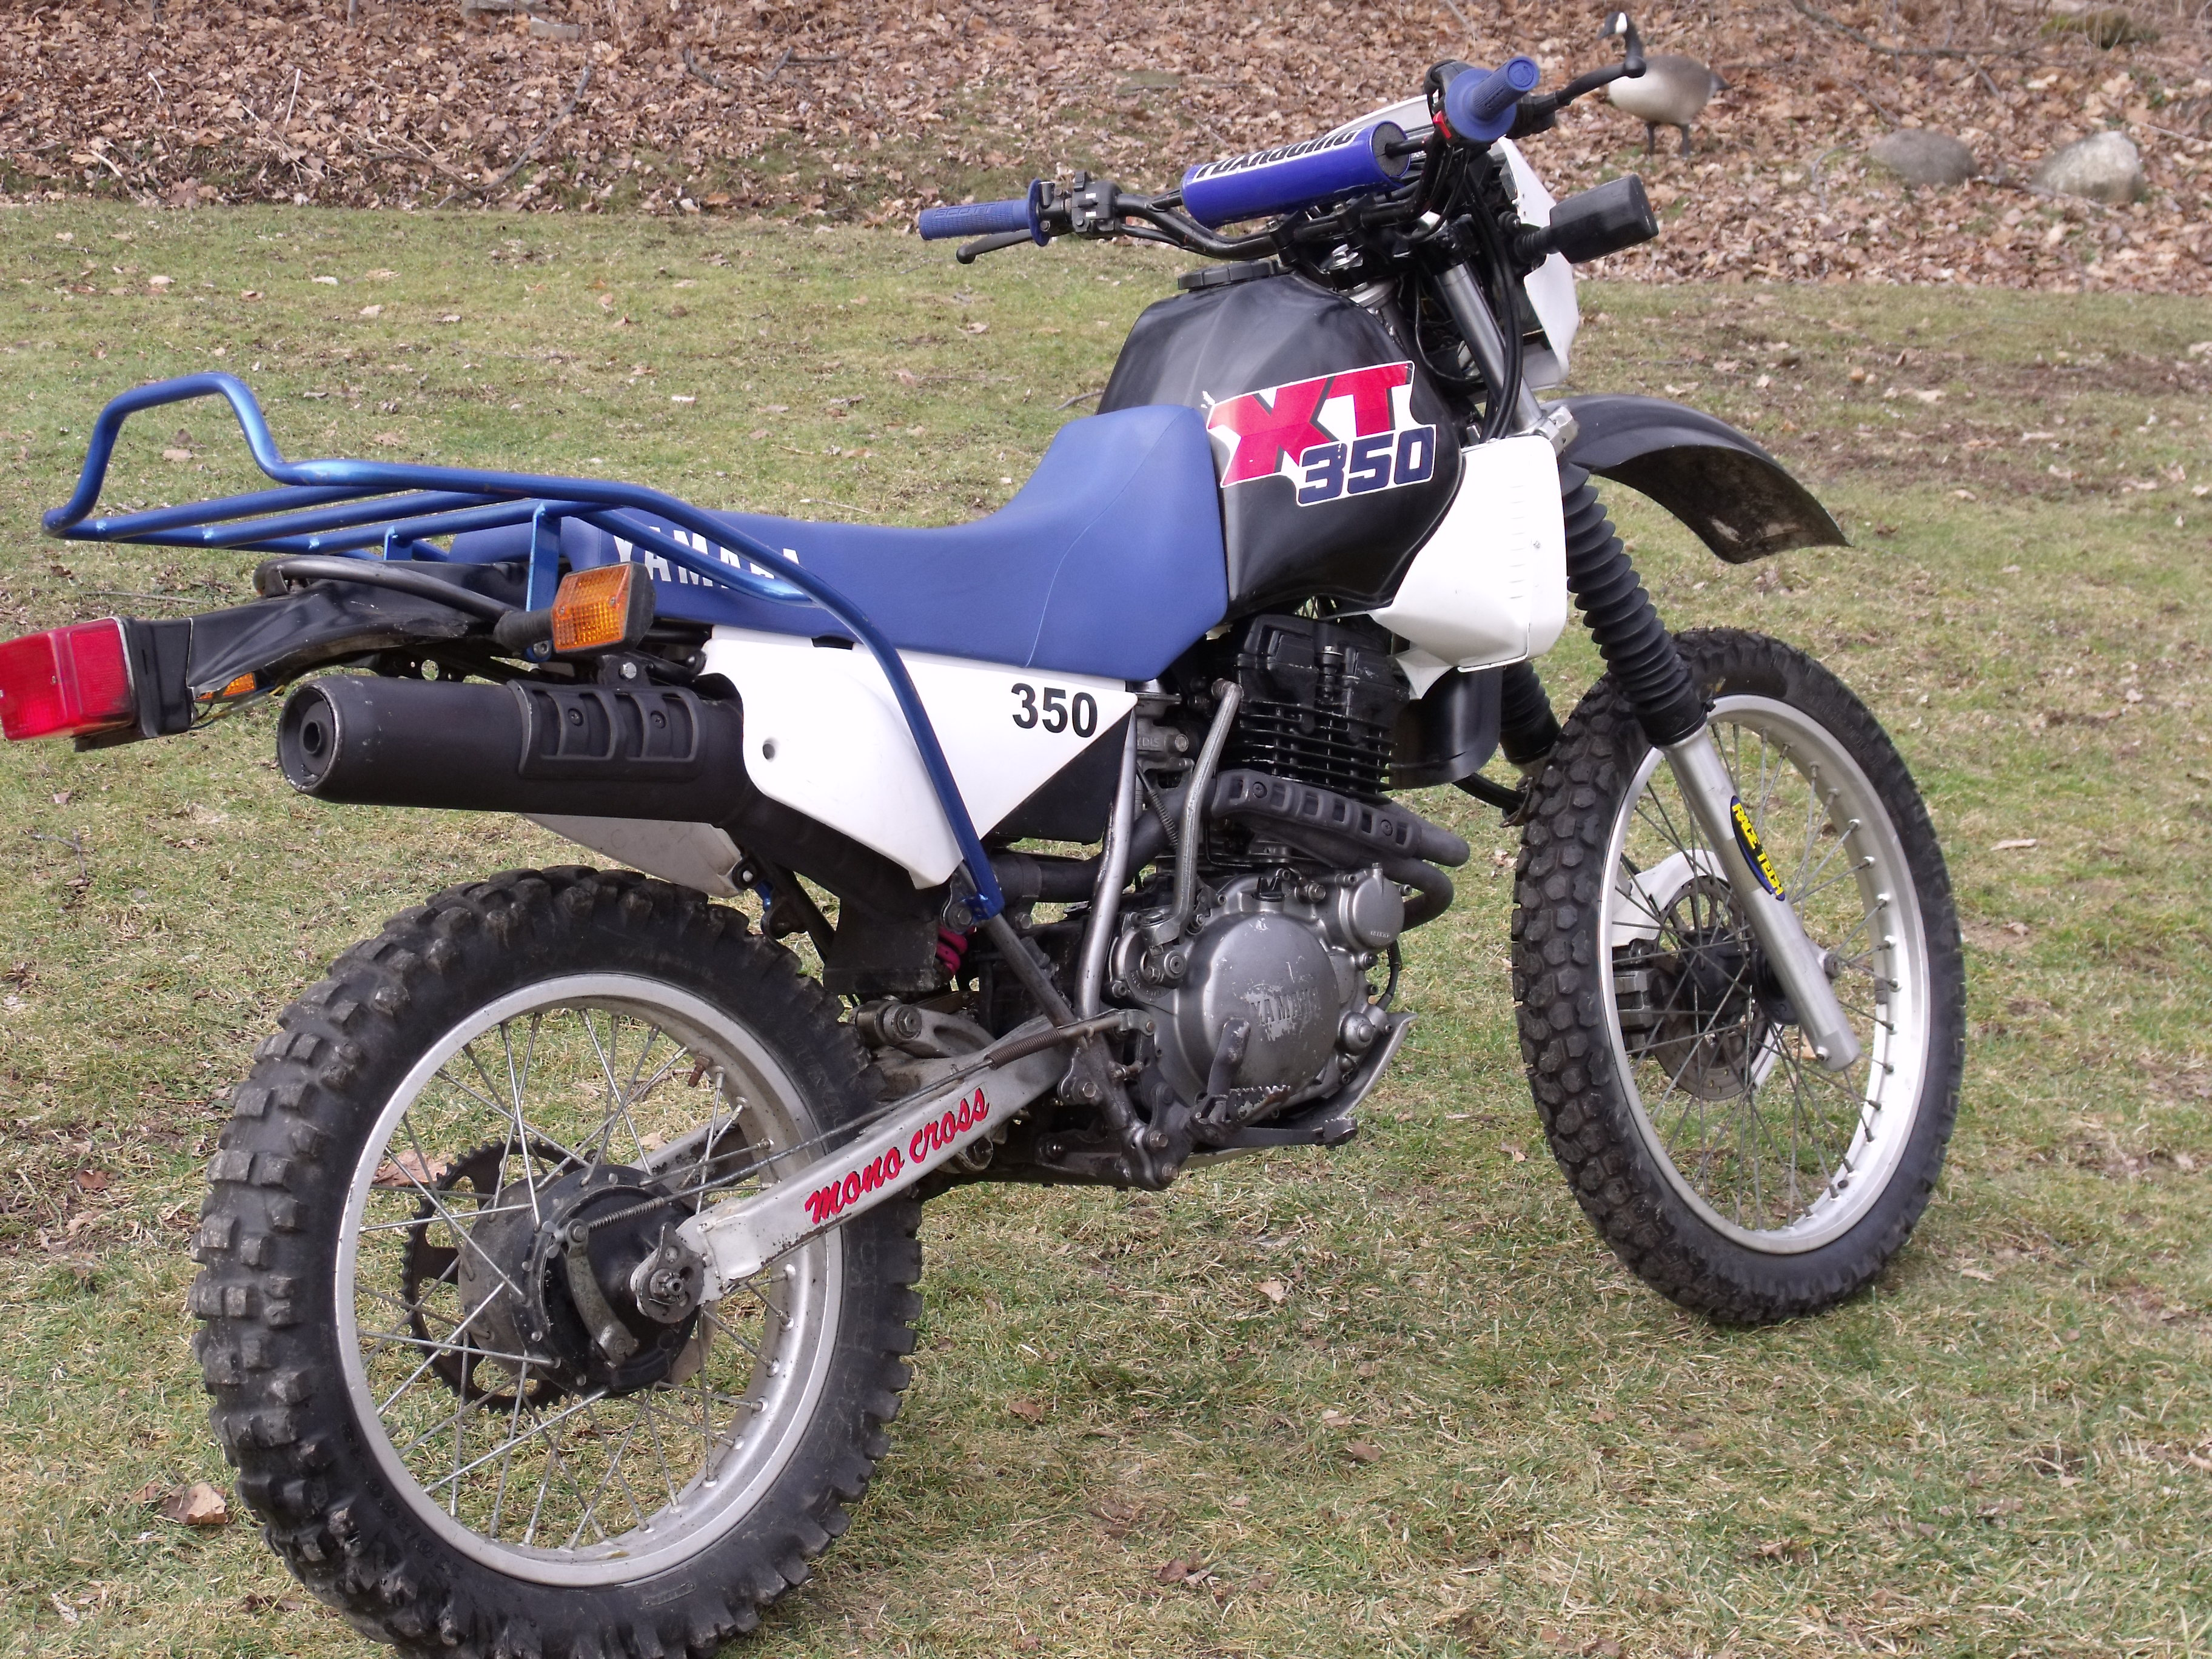 1995 yamaha xt 350 pics specs and information. Black Bedroom Furniture Sets. Home Design Ideas